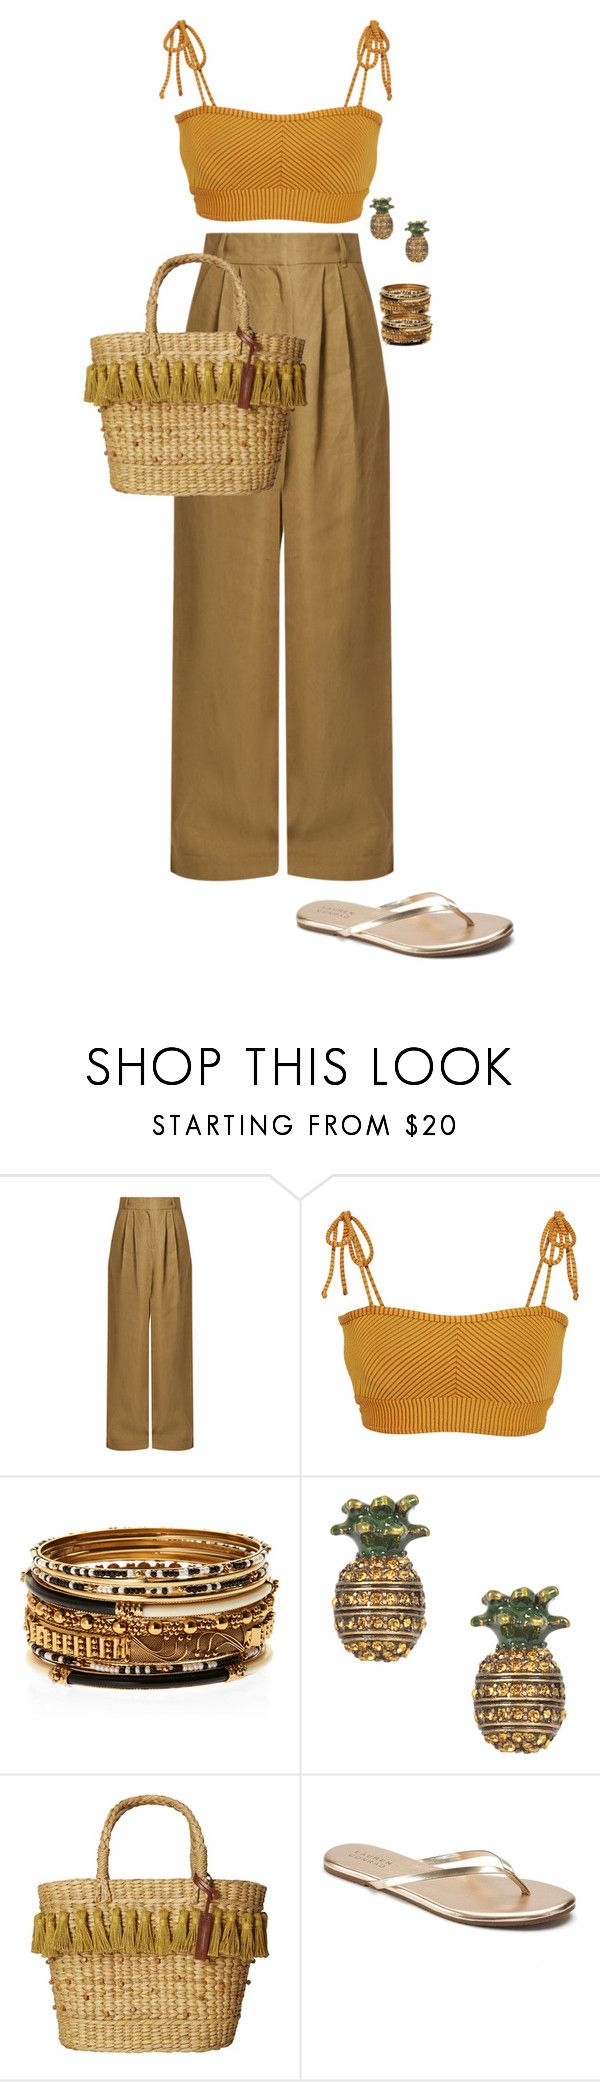 """Carter"" by ccoss on Polyvore featuring TIBI, Made By Dawn, Amrita Singh, Marc Jacobs, White Stuff and LC Lauren Conrad"